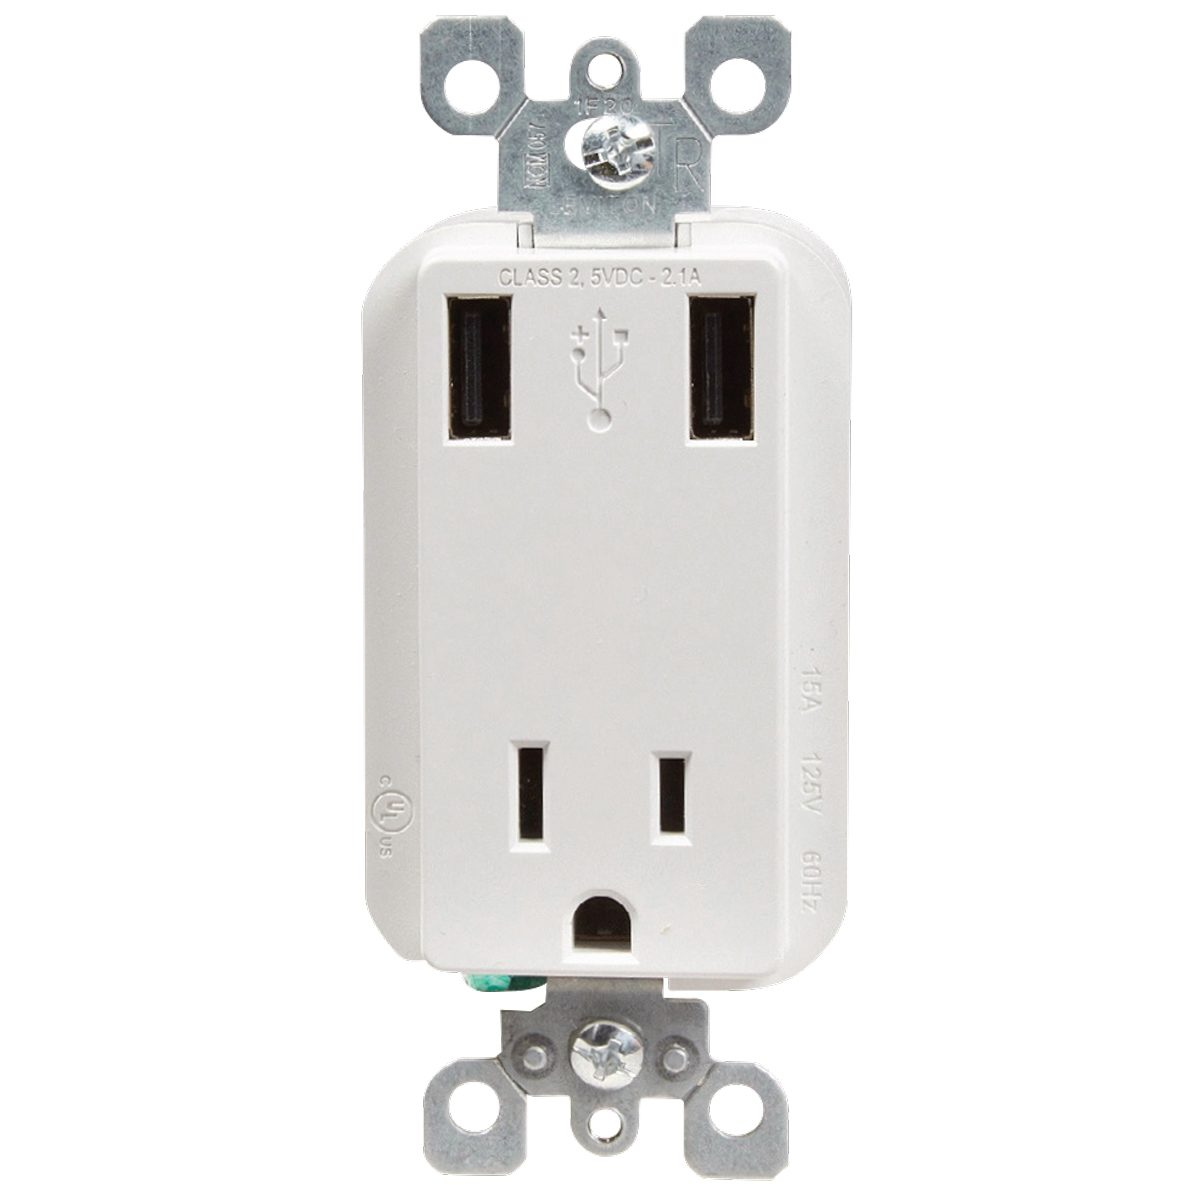 Ac outlet plug with usb ports